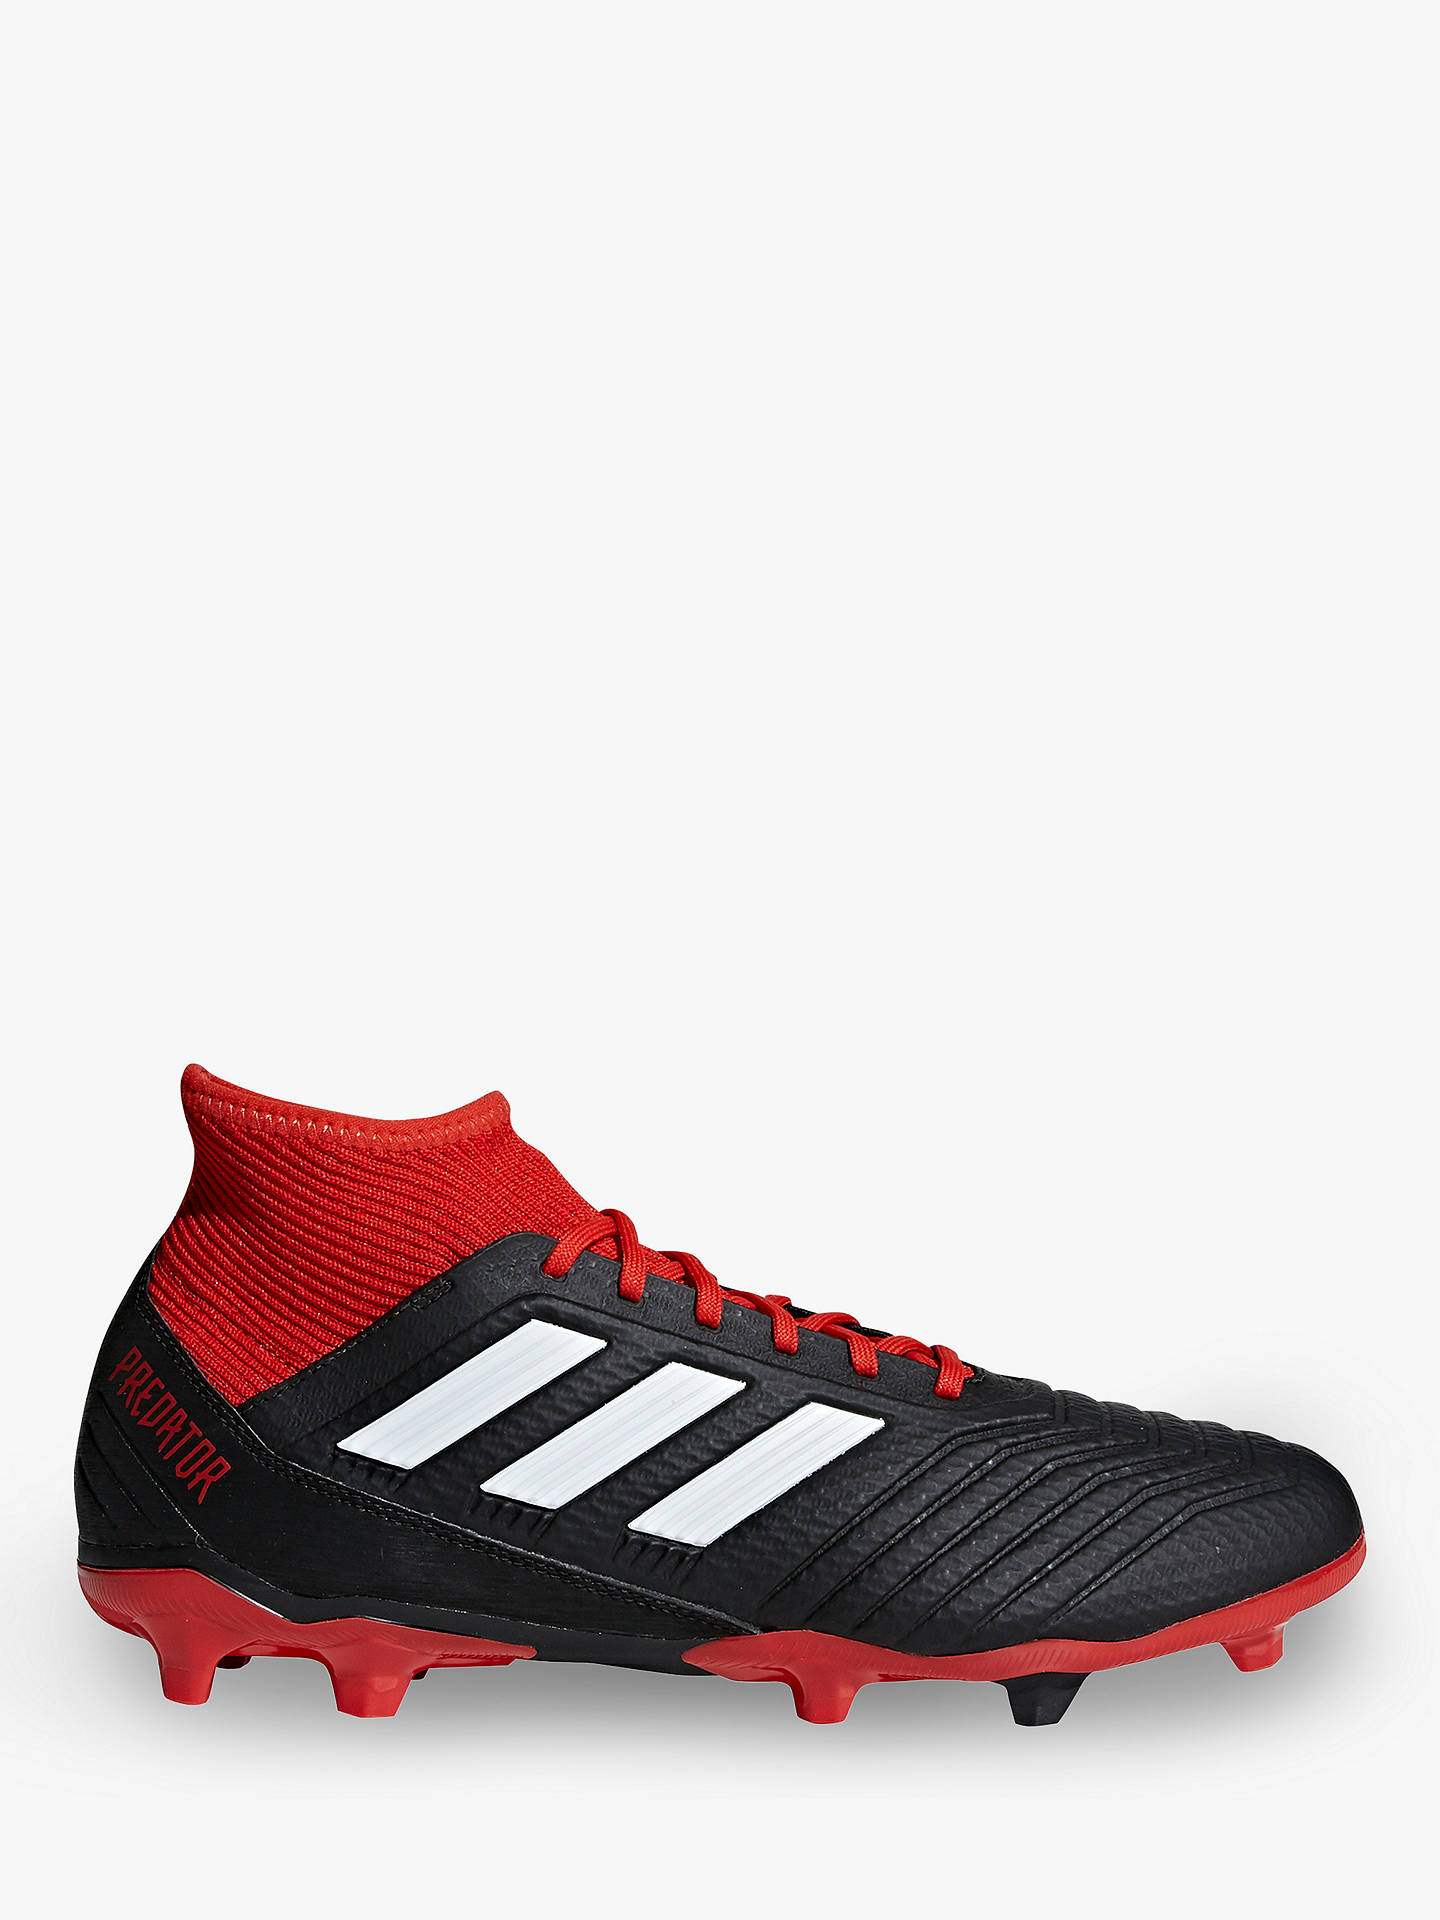 ba46d8f68b89 Buy adidas Predator 18.3 Men s Football Boots